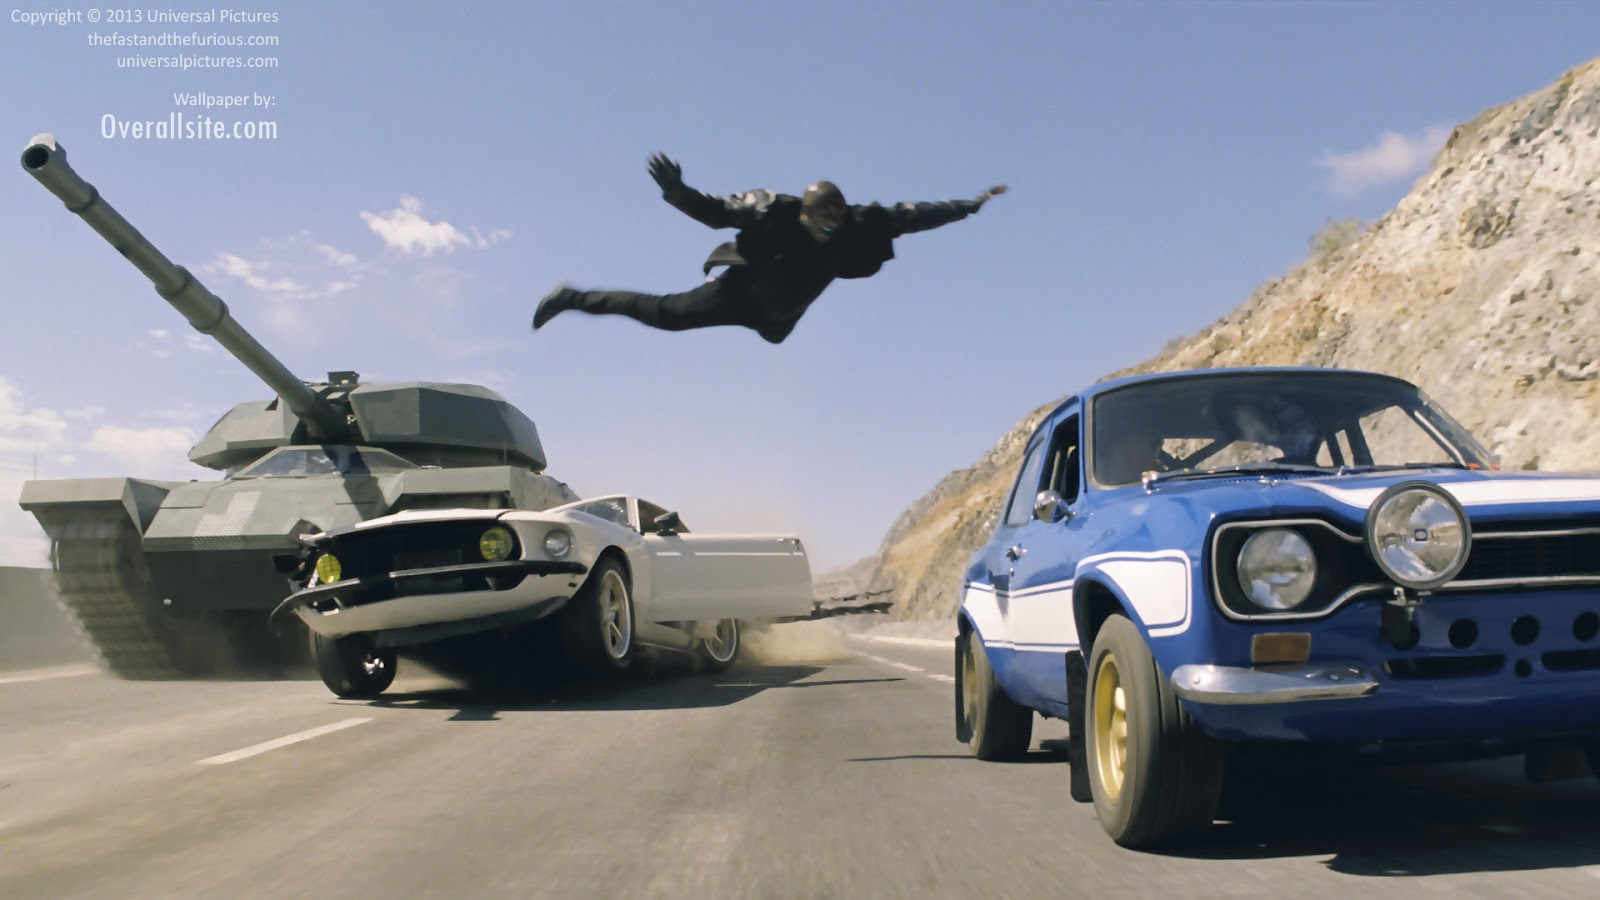 Fast And Furious Hd Wallpaper Background: Fast And Furious 6 HD Wallpapers